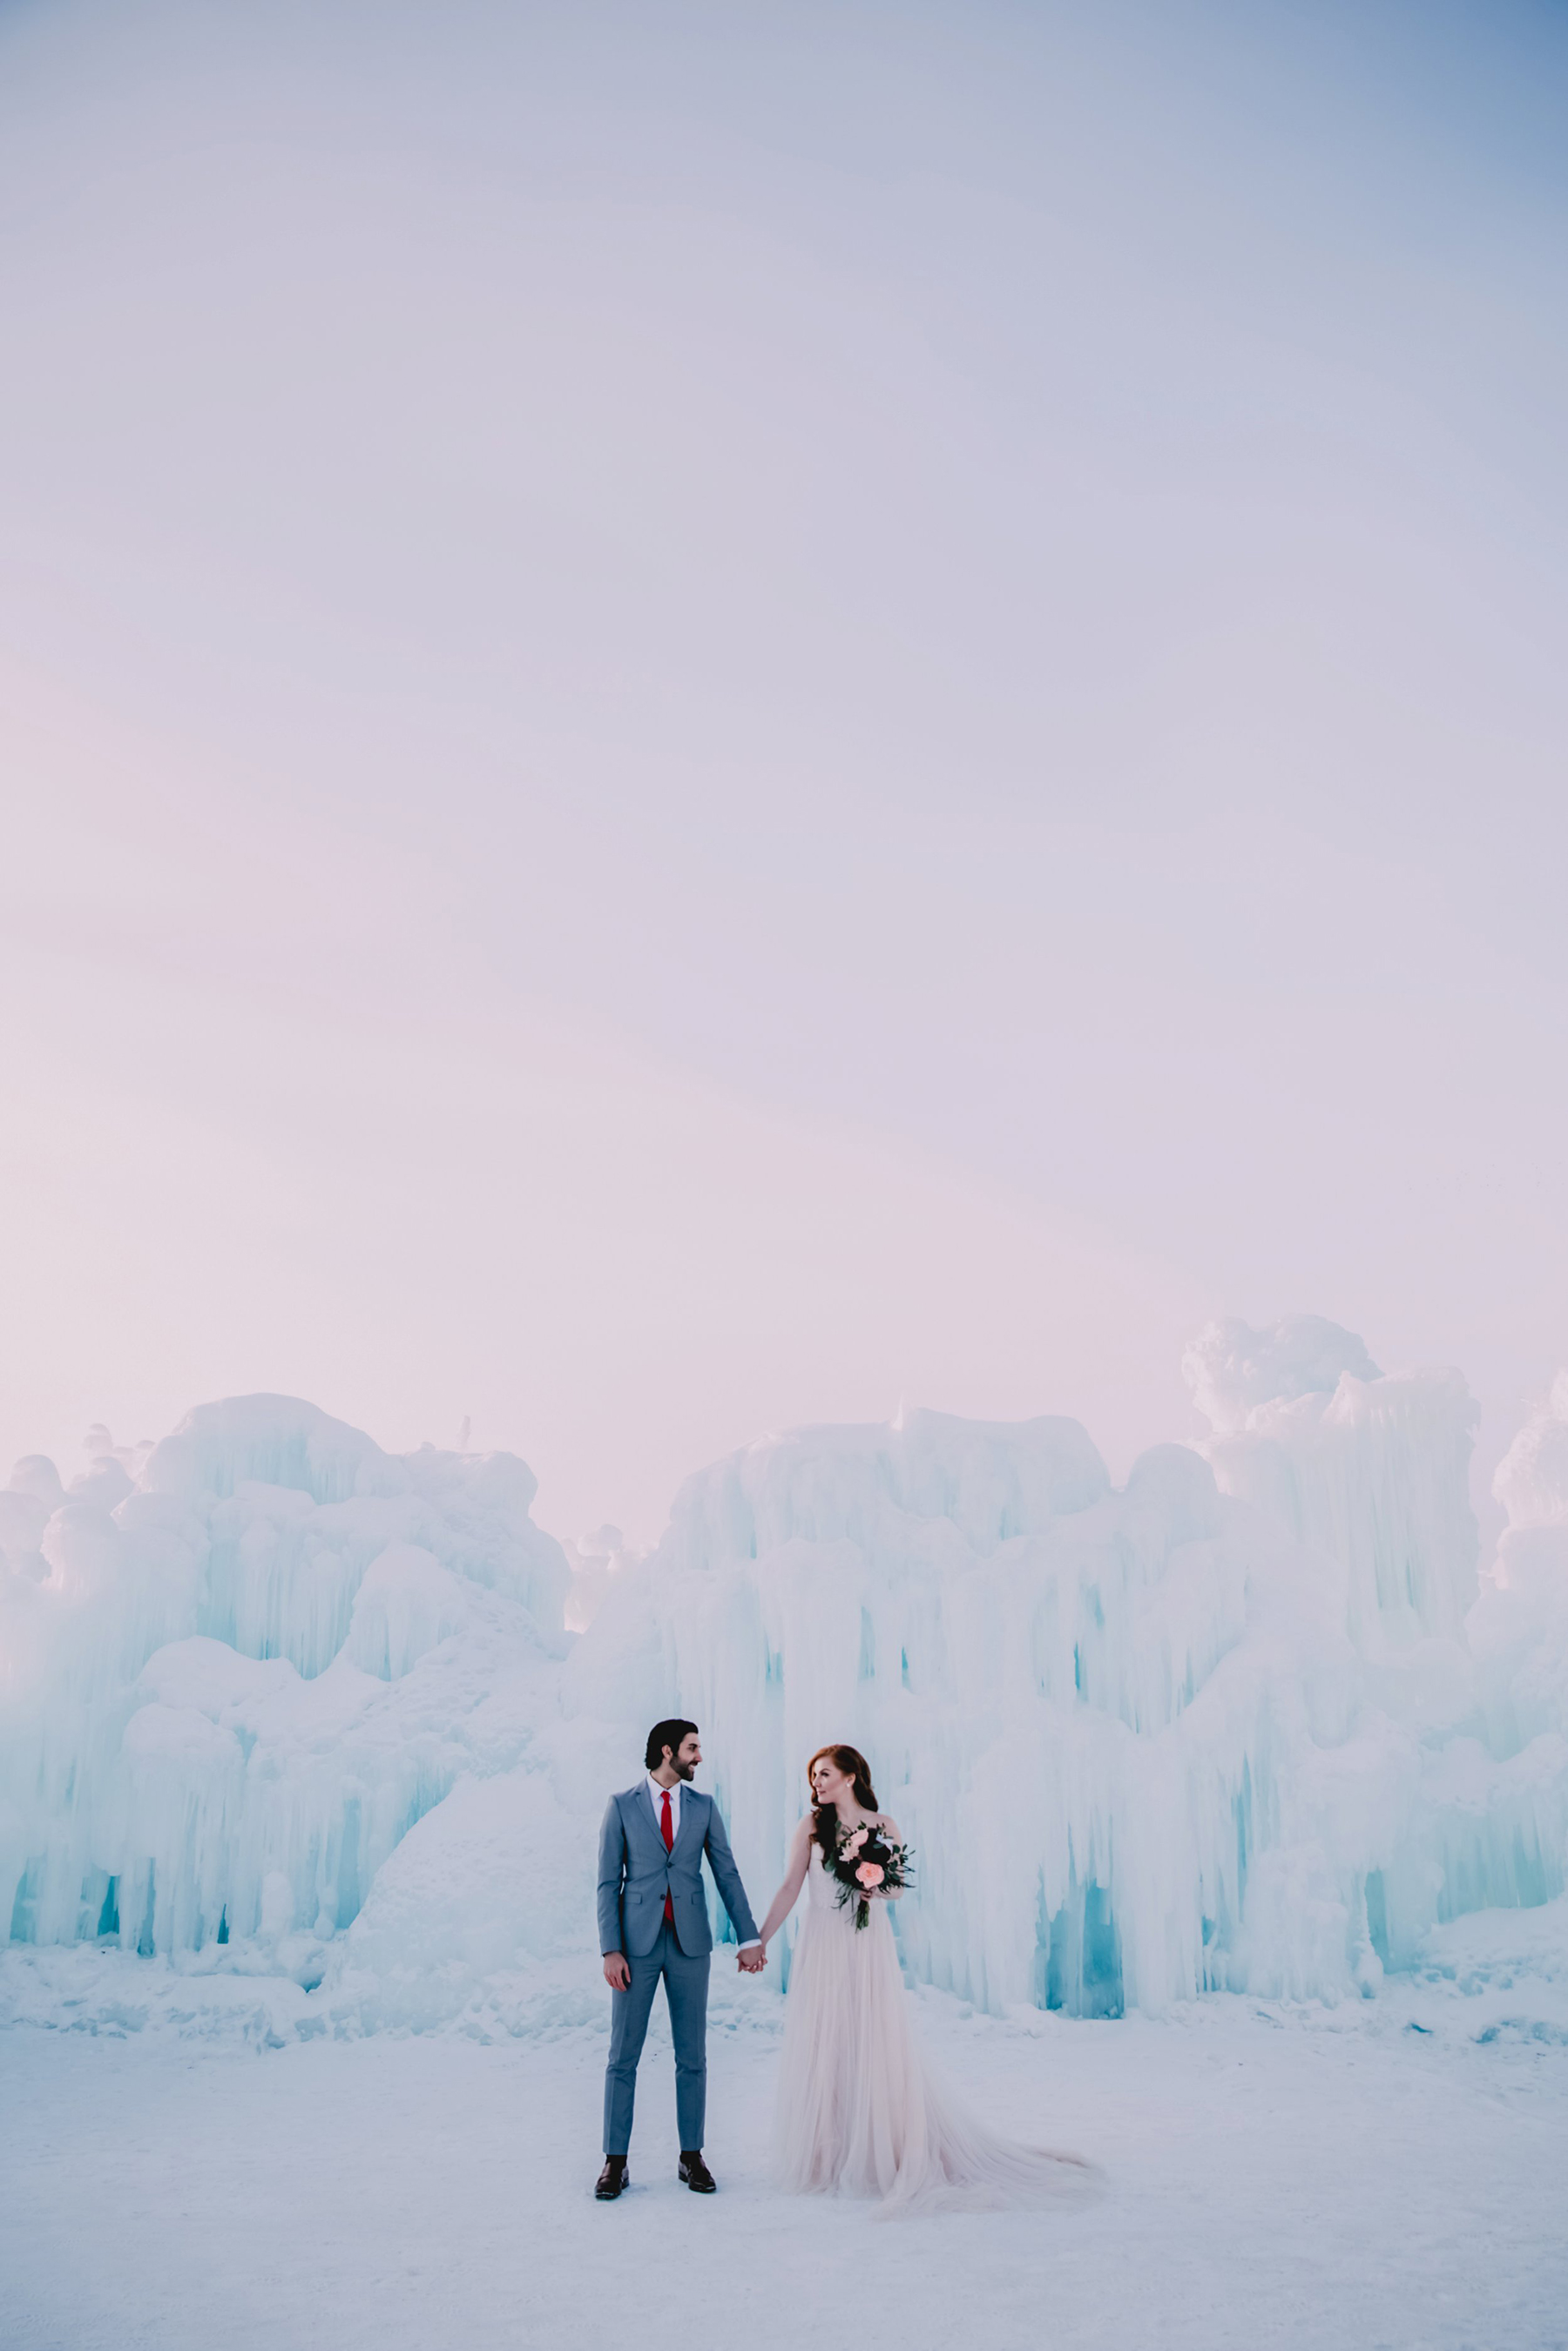 Bride and Groom Posing with Ice Castle